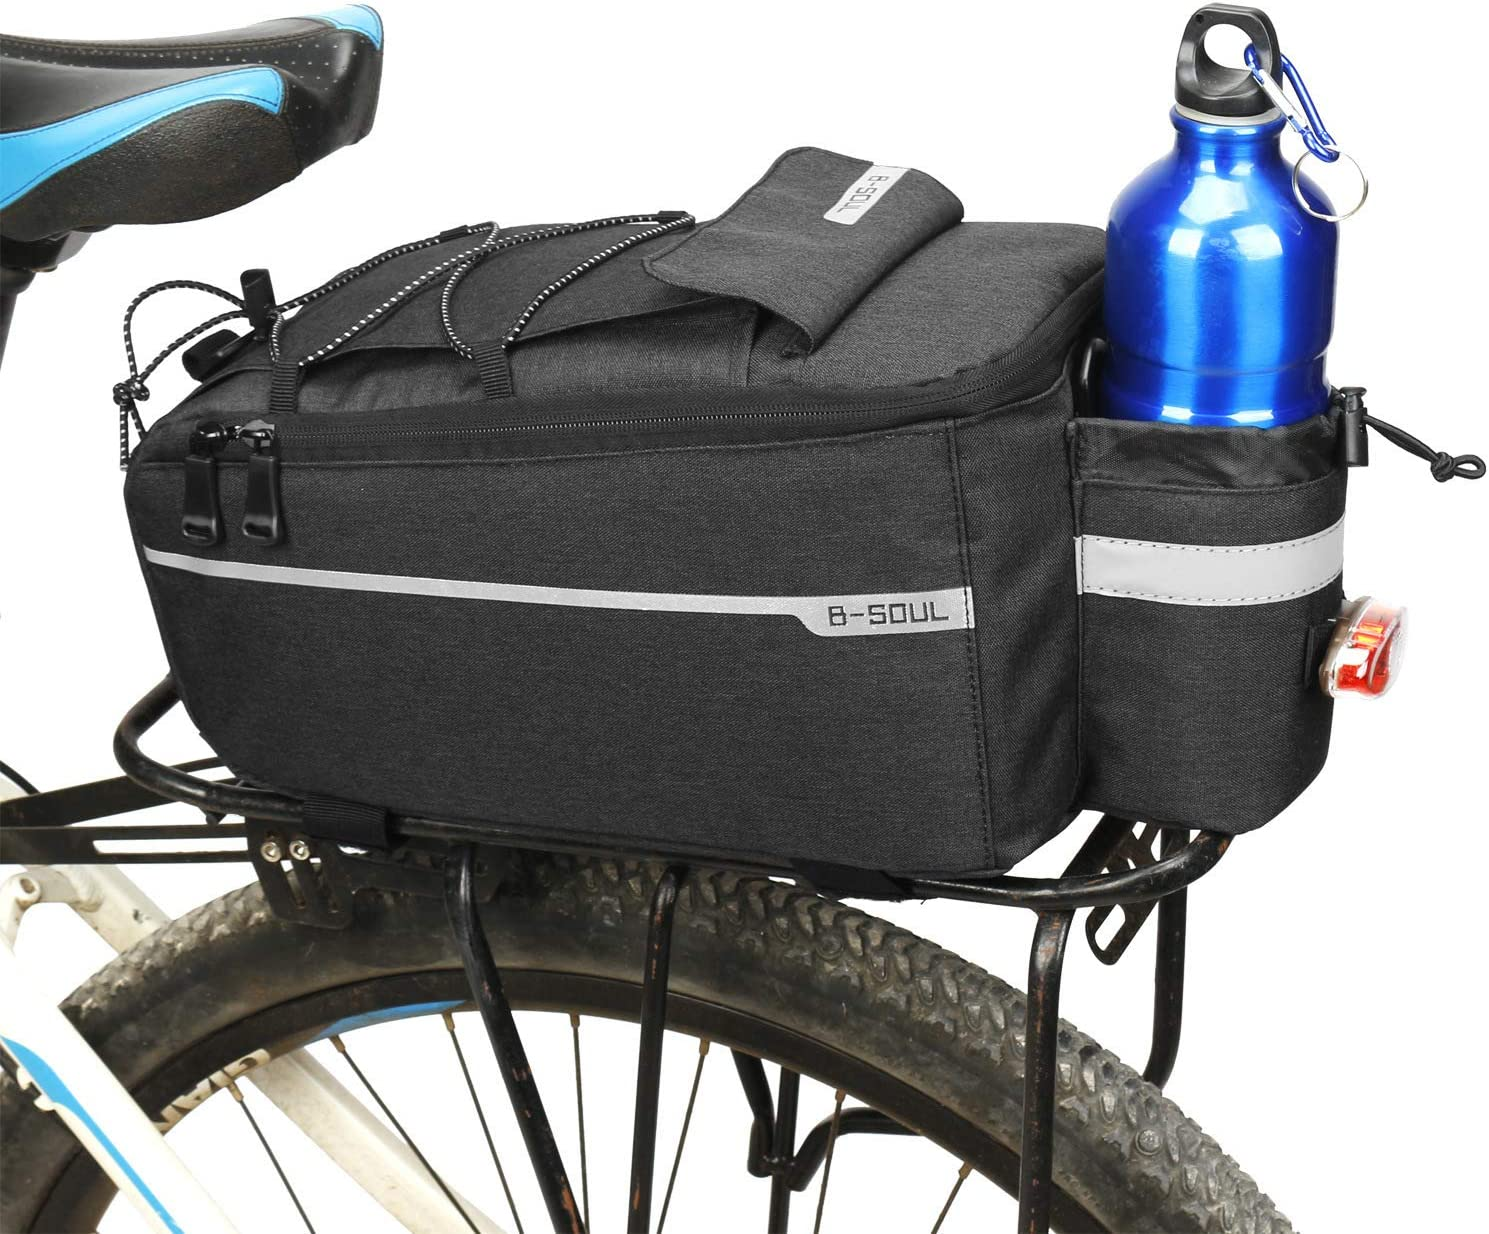 GLE2016 Bike Trunk Bag Bicycle Rear Seat Bag Carrier Bag Reflective MTB Bike Pannier Shoulder Bag Insulated Trunk Cooler Bag for Warm or Cold Items